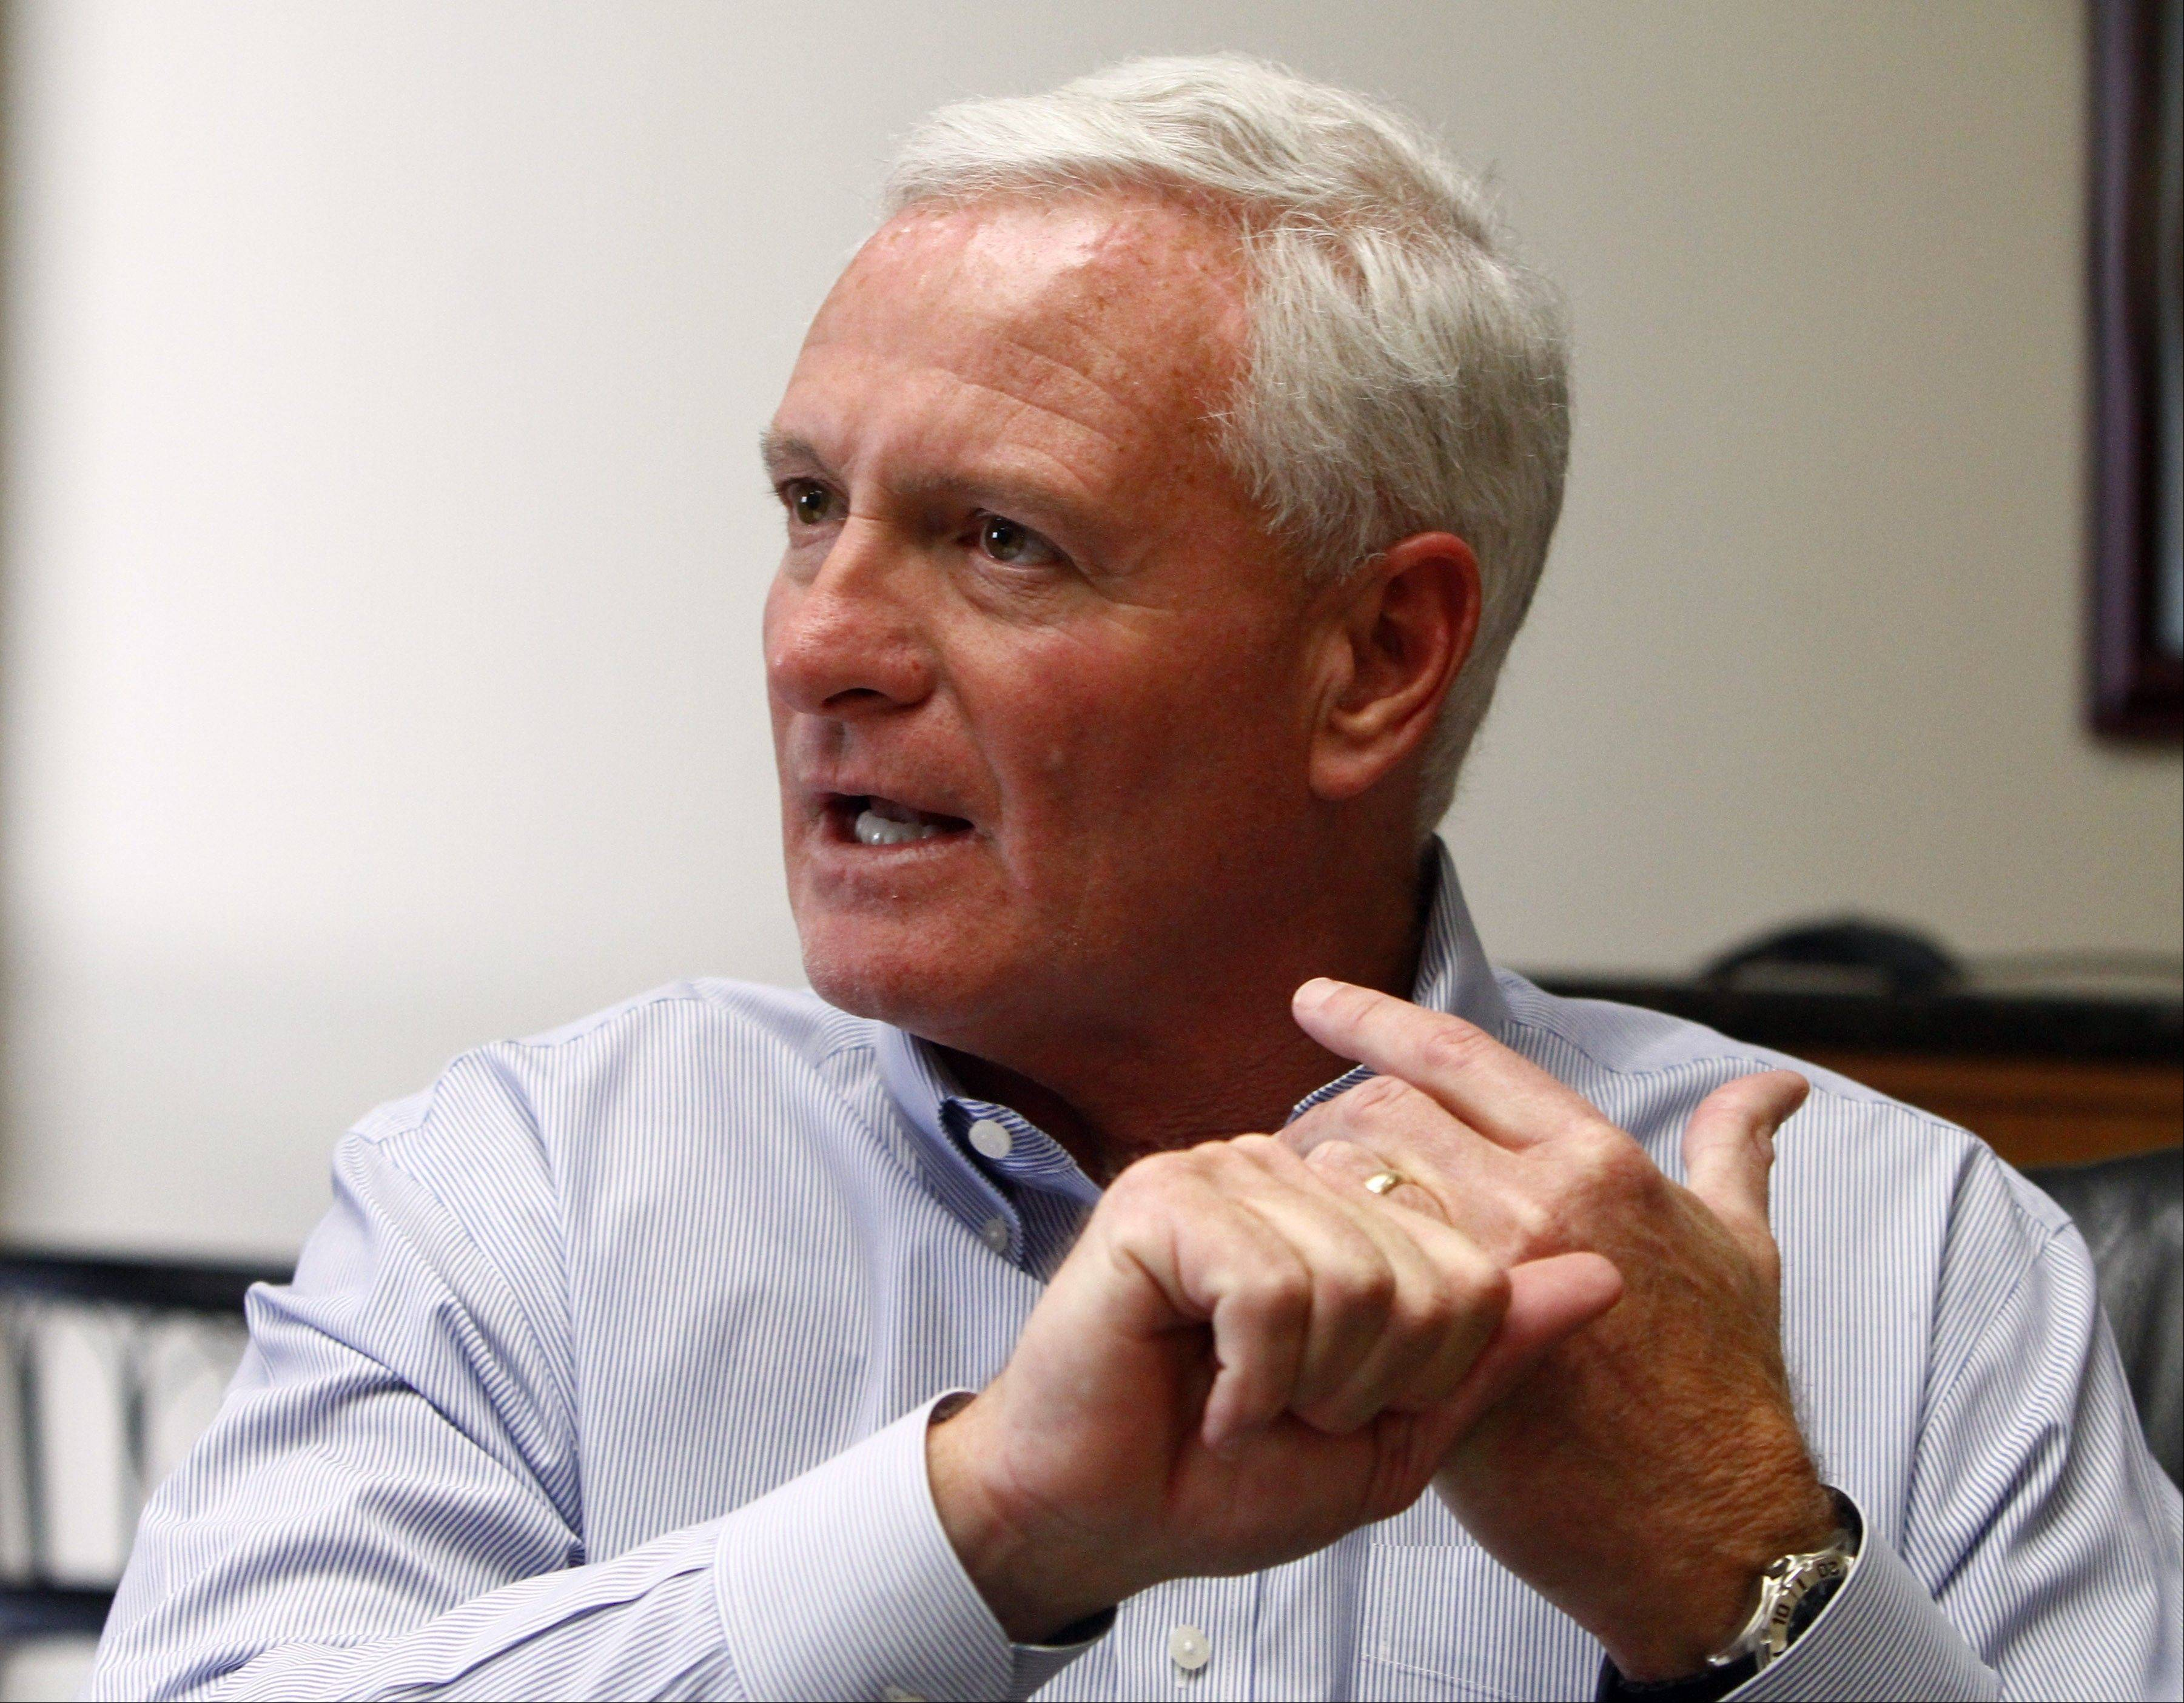 A Pilot Flying J employee told investigators that CEO Jimmy Haslam, who is also the owner of the Cleveland Browns, knew about rebate fraud at the truck stop chain his family owns, according to an FBI affidavit unsealed Thursday.